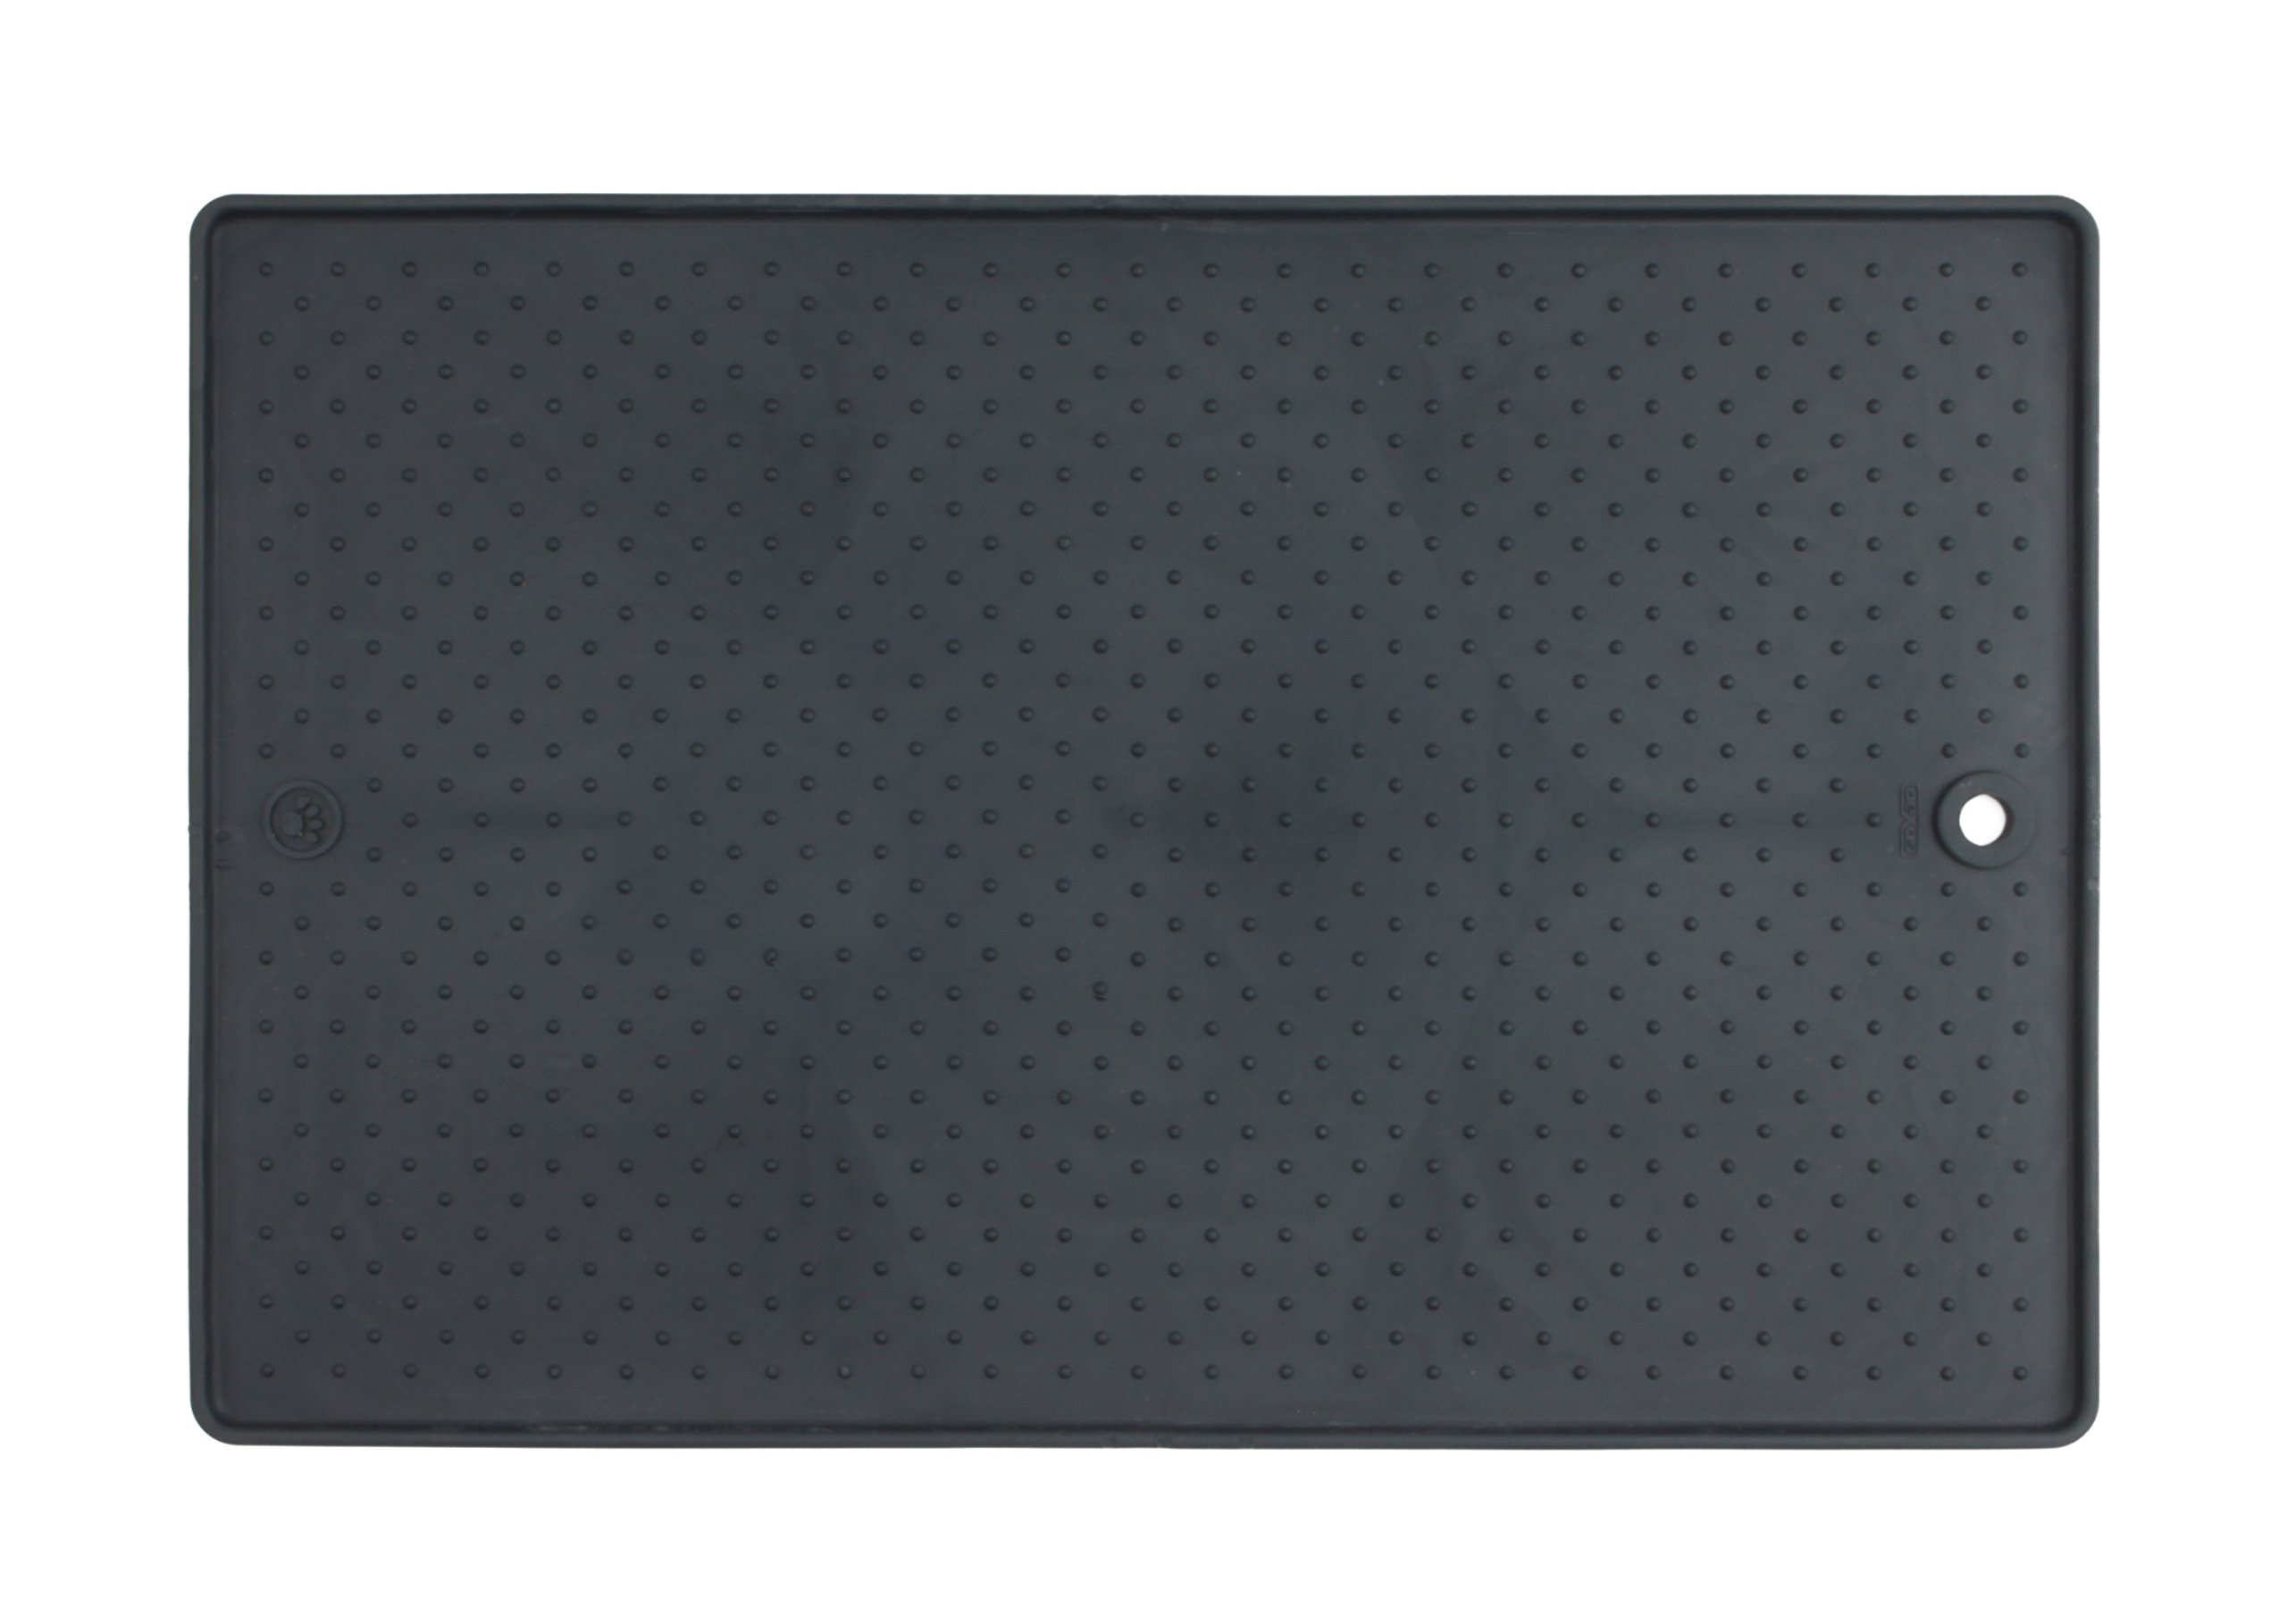 Dexas Grippmat for Pet Bowls, 13 by 19 inches, Gray